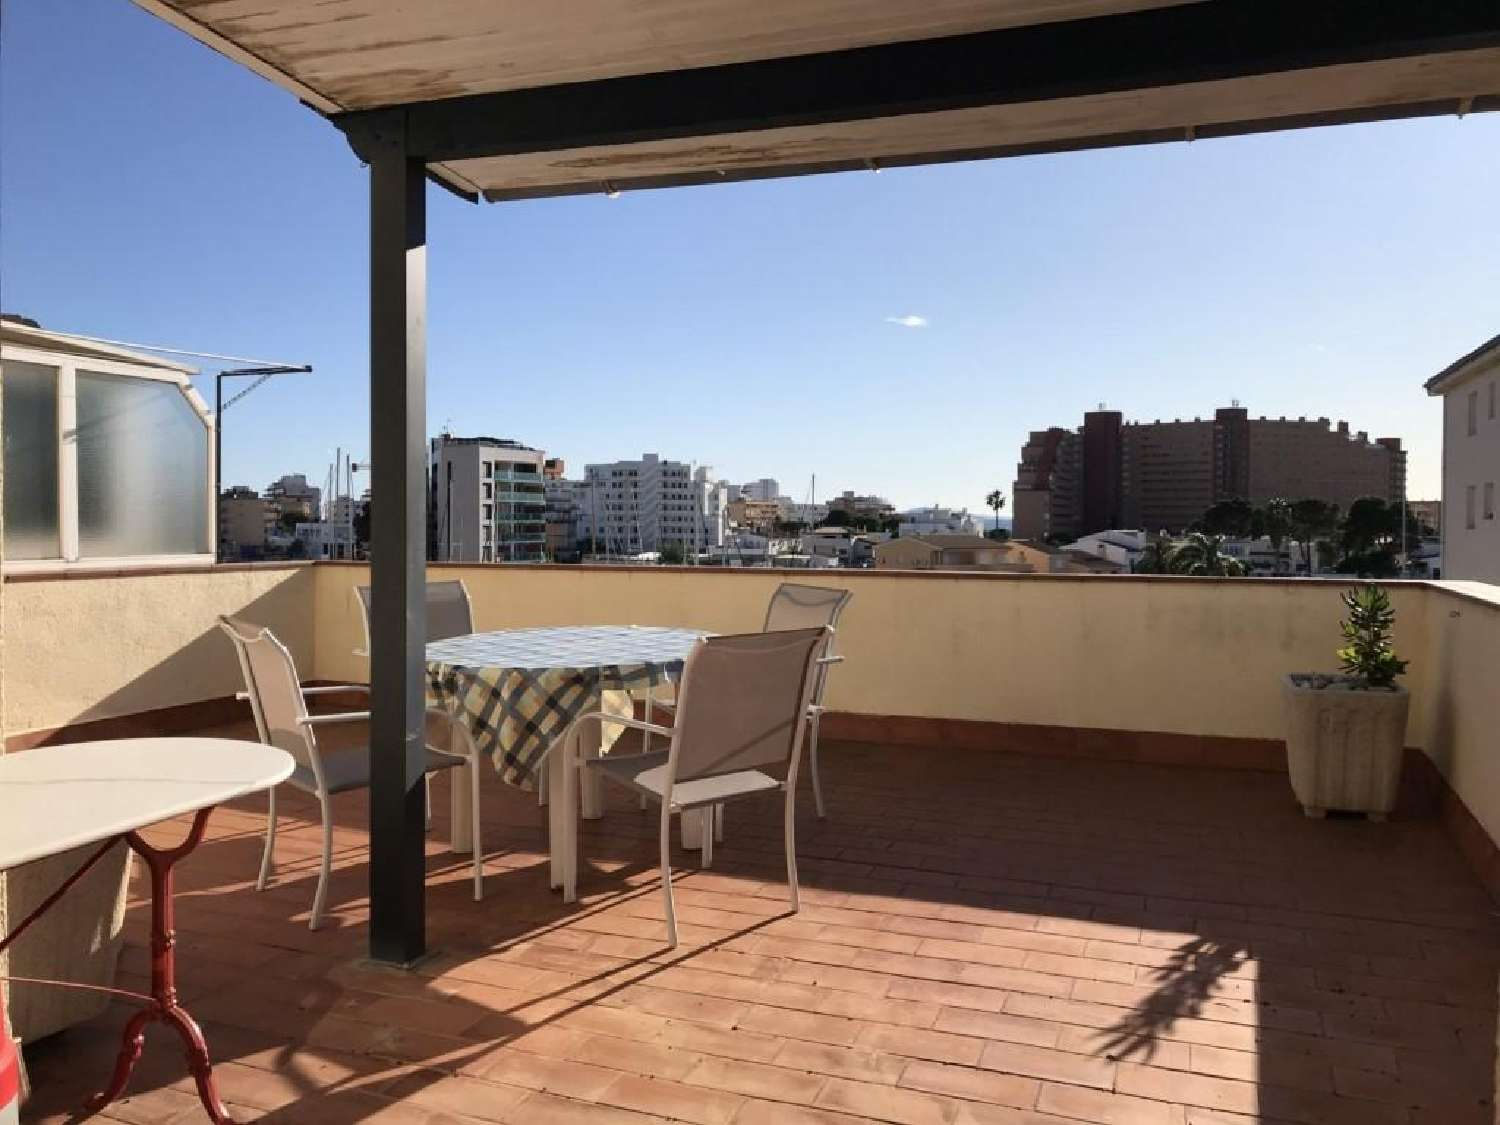 roses girona appartement foto 4606328